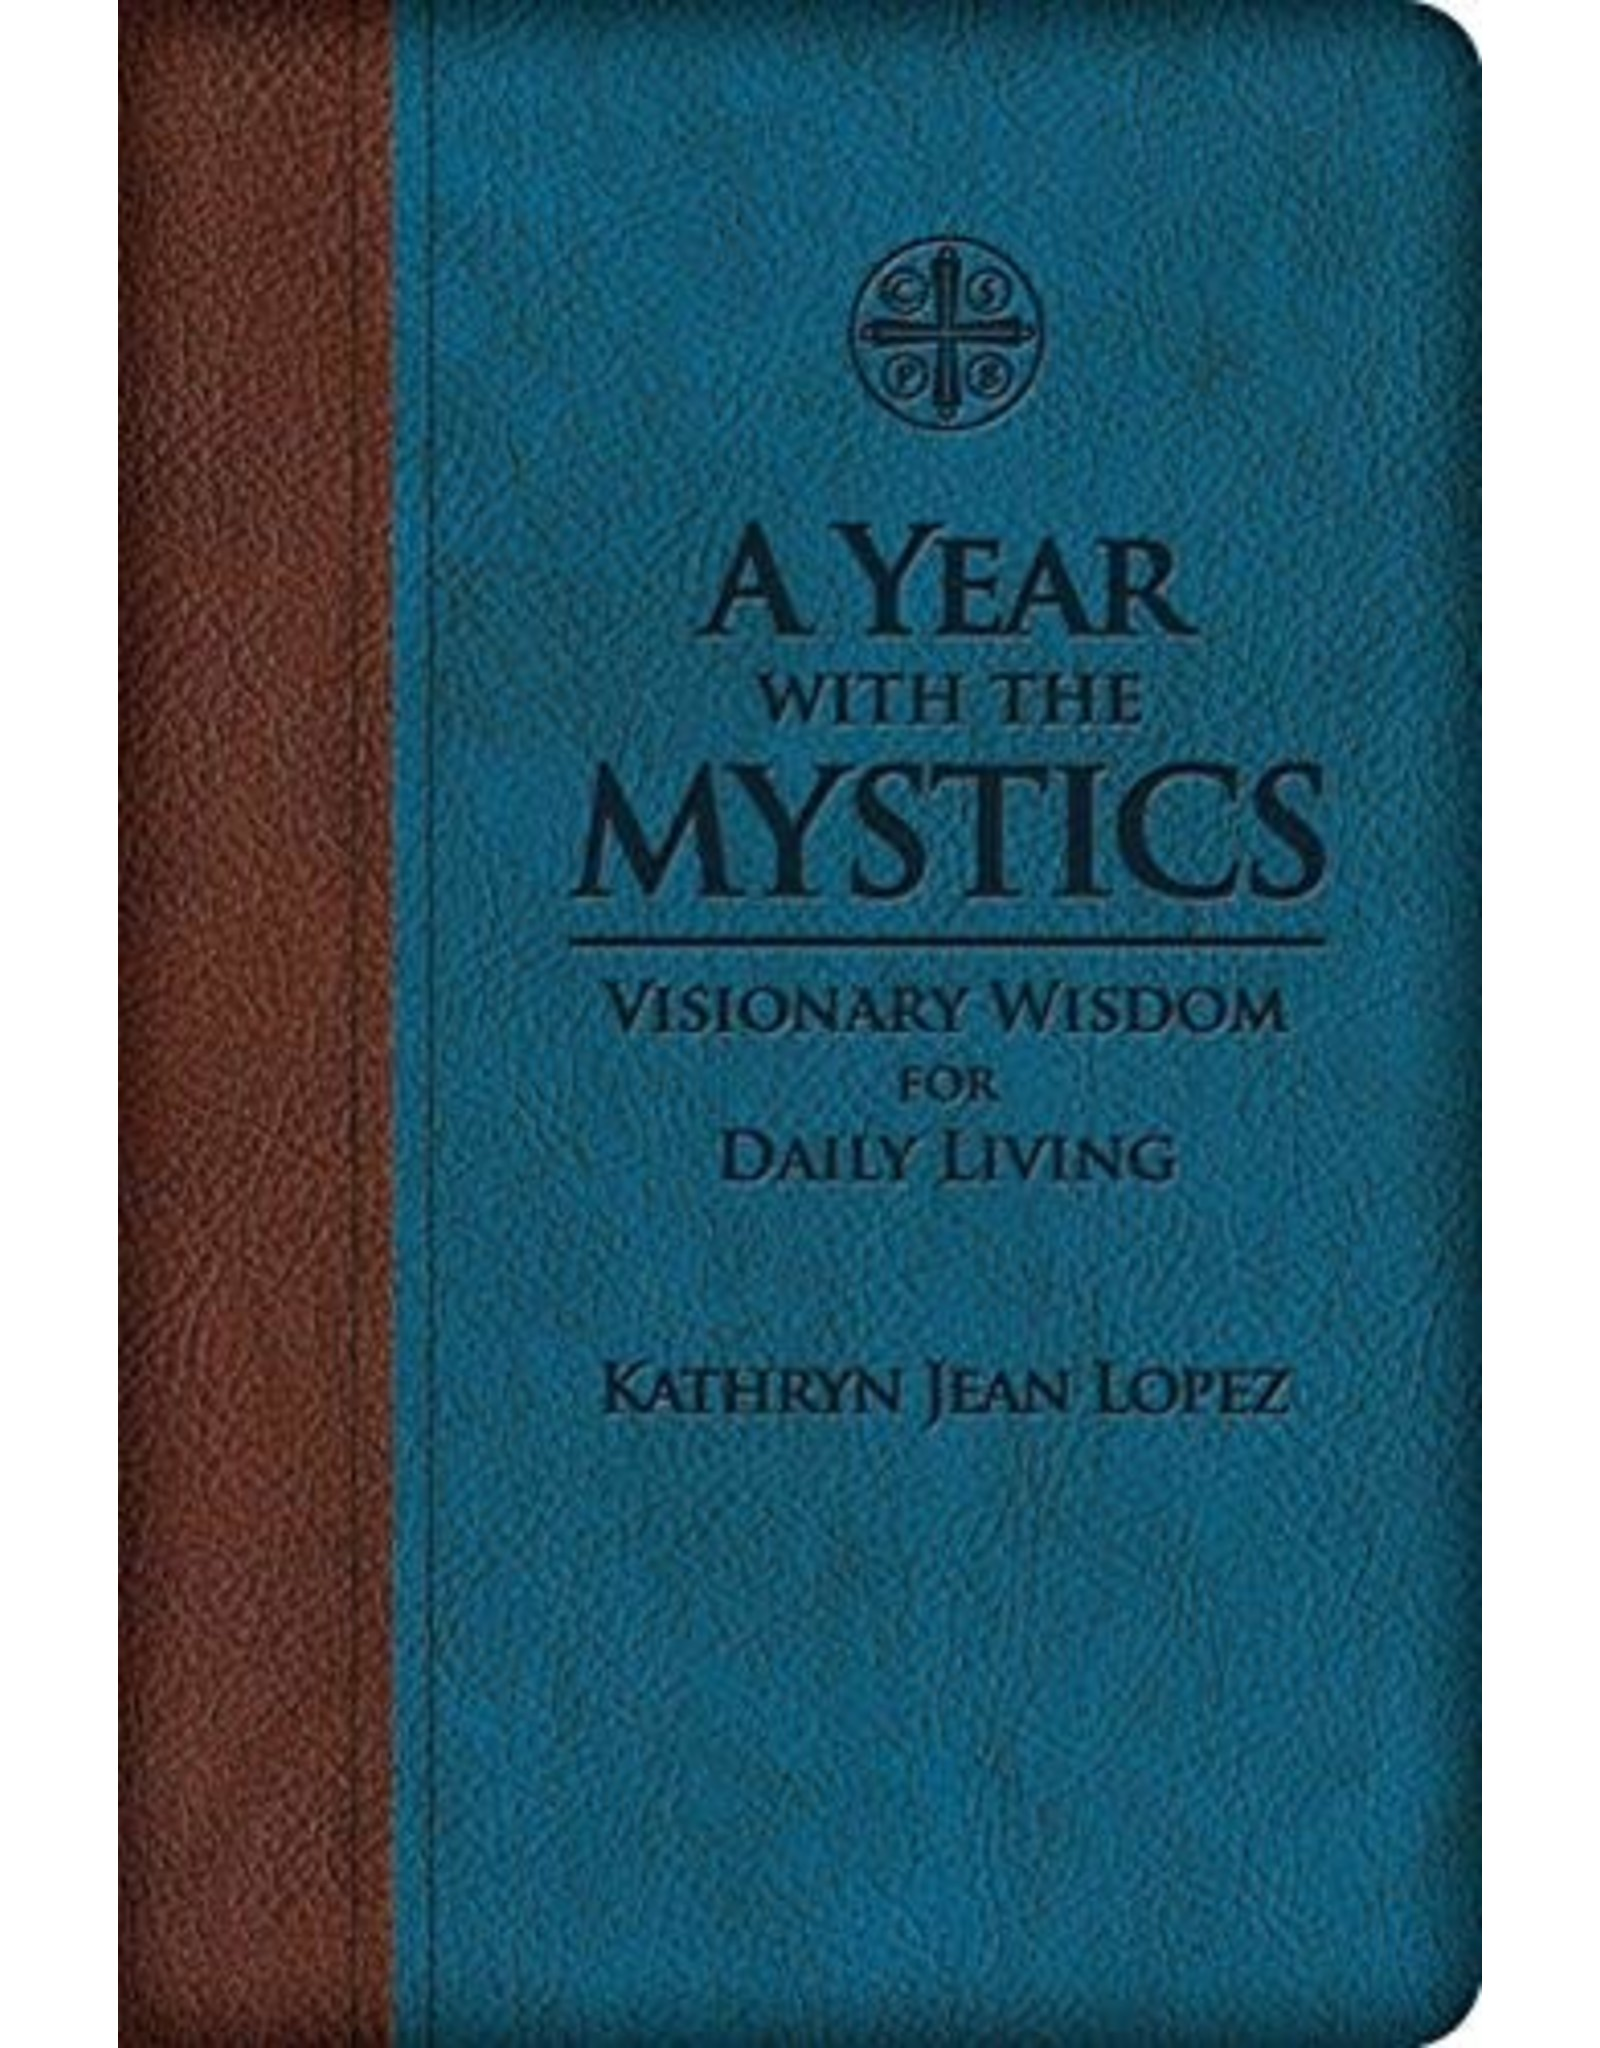 A Year with the Mystics: Visionary Wisdom for Daily Living by Kathyrn Jean Lopez (LuxLeather Binding)